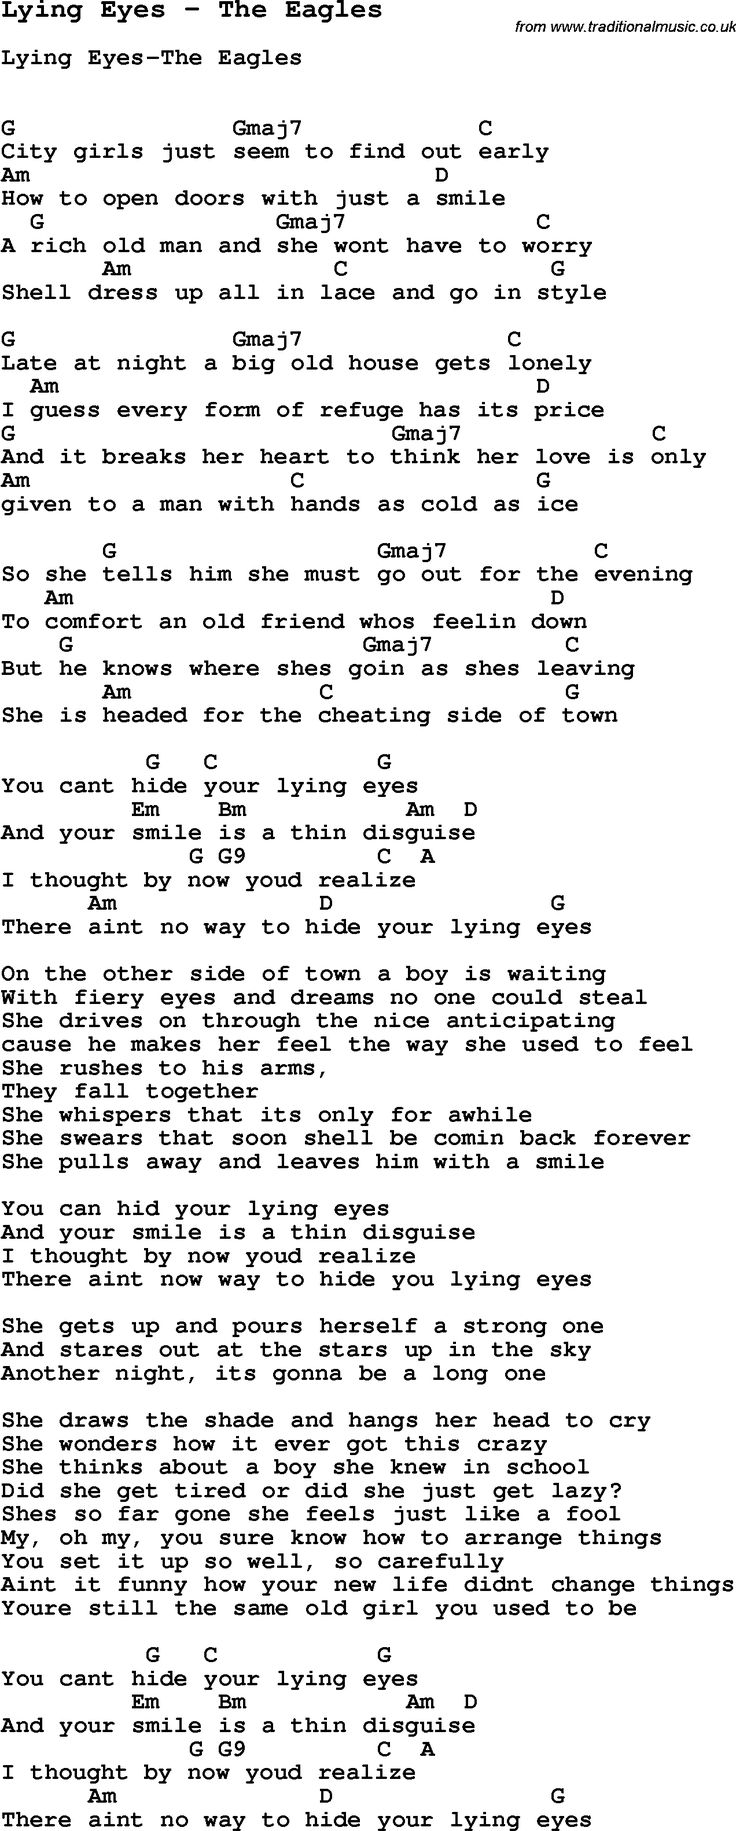 132 best song images on pinterest music education banjos and song lying eyes by the eagles with lyrics for vocal performance and accompaniment chords for hexwebz Gallery